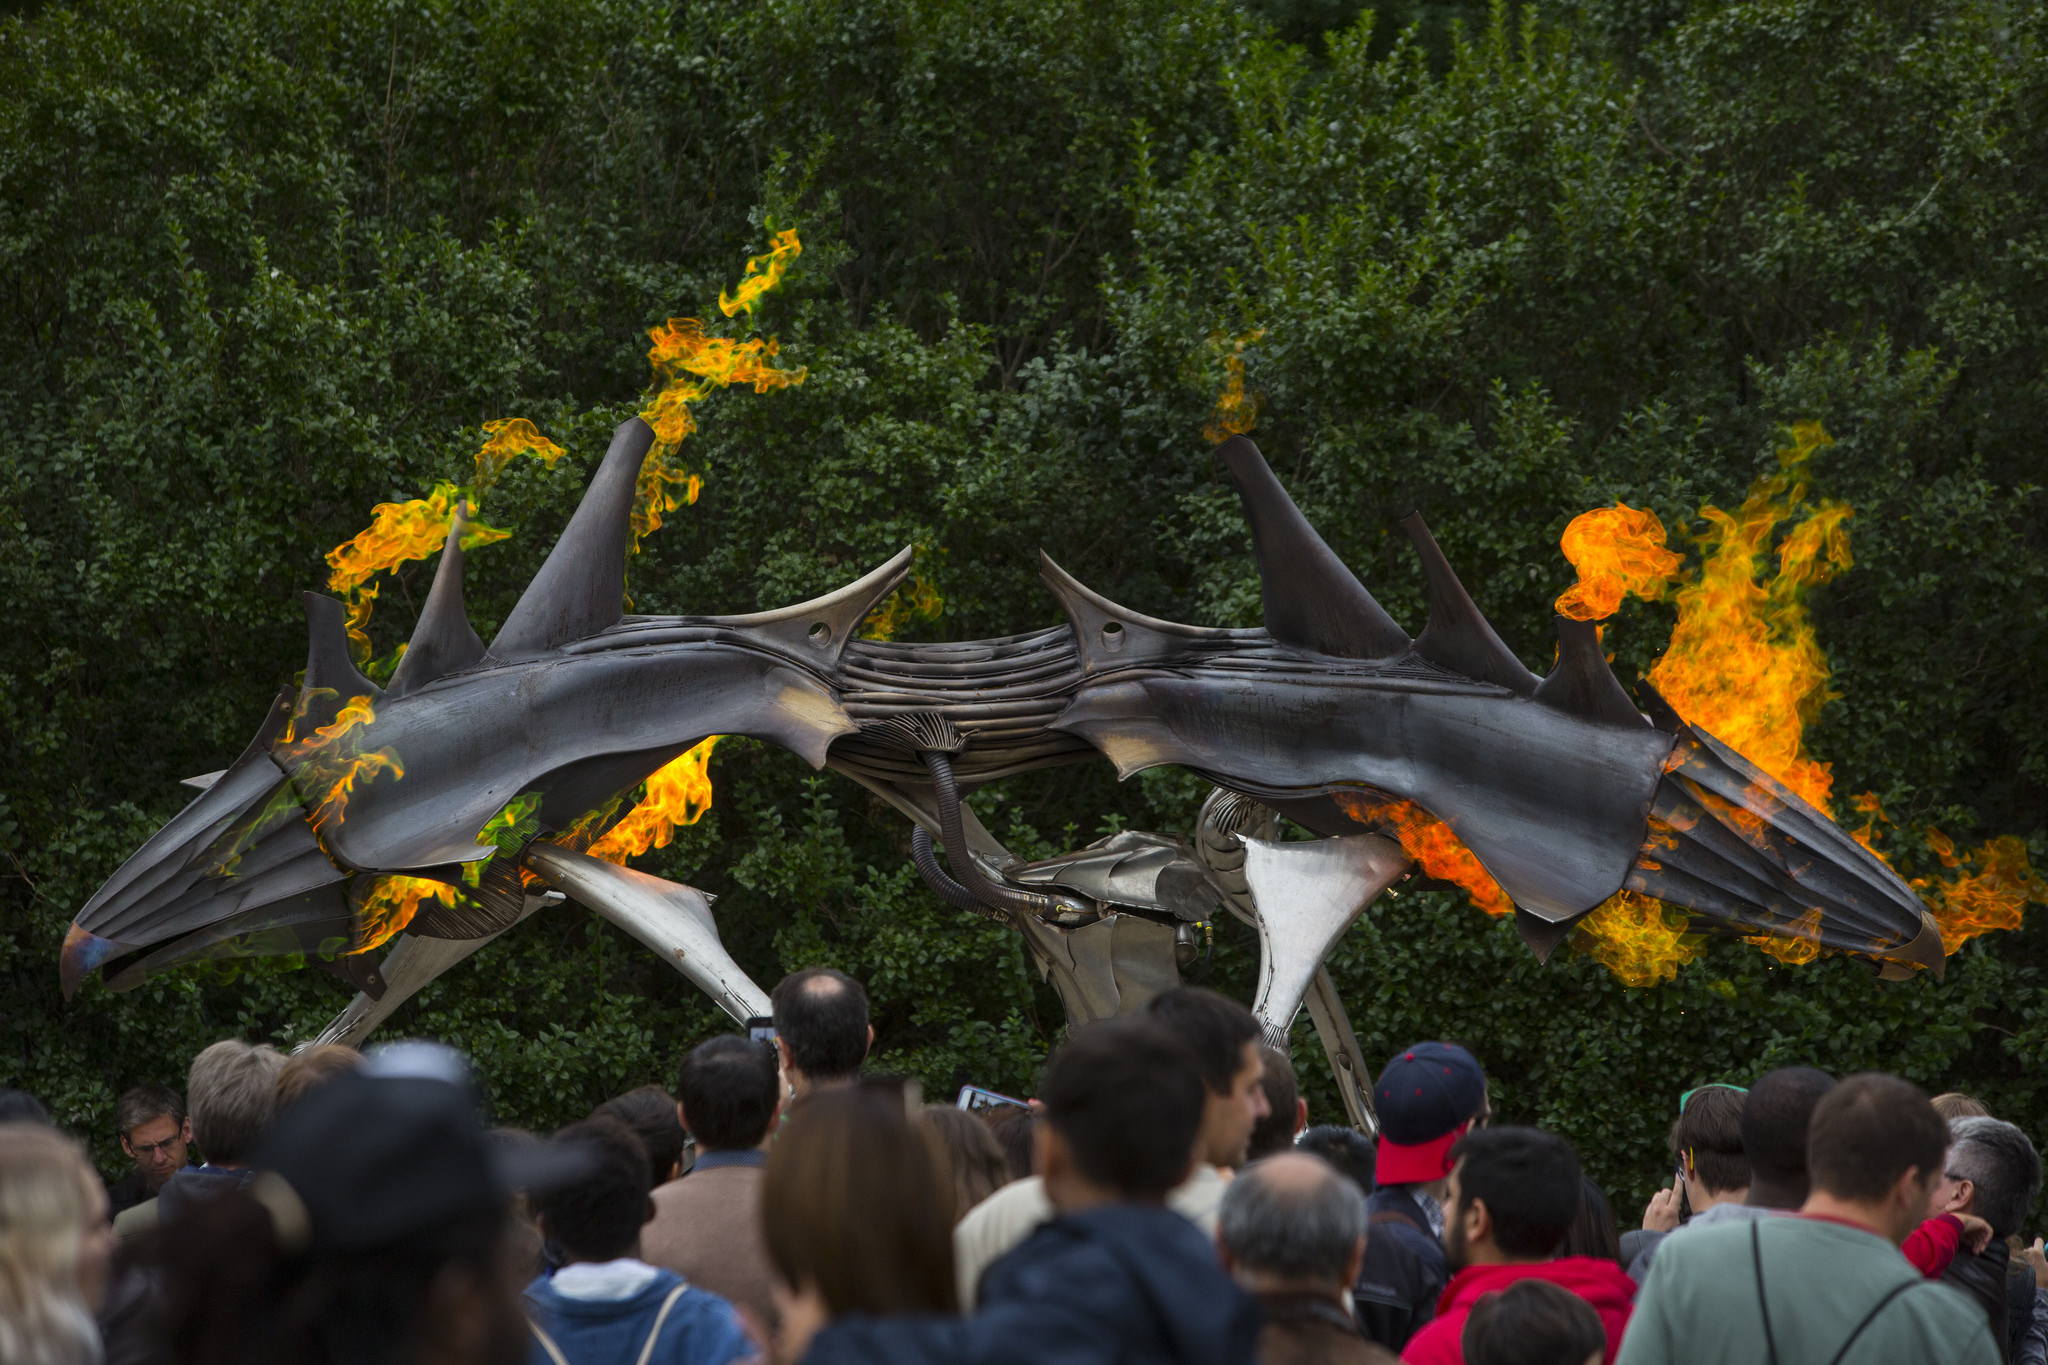 Fire-Breathing Gilly Emits Gorgeous Green Flames at Maker Faire New York